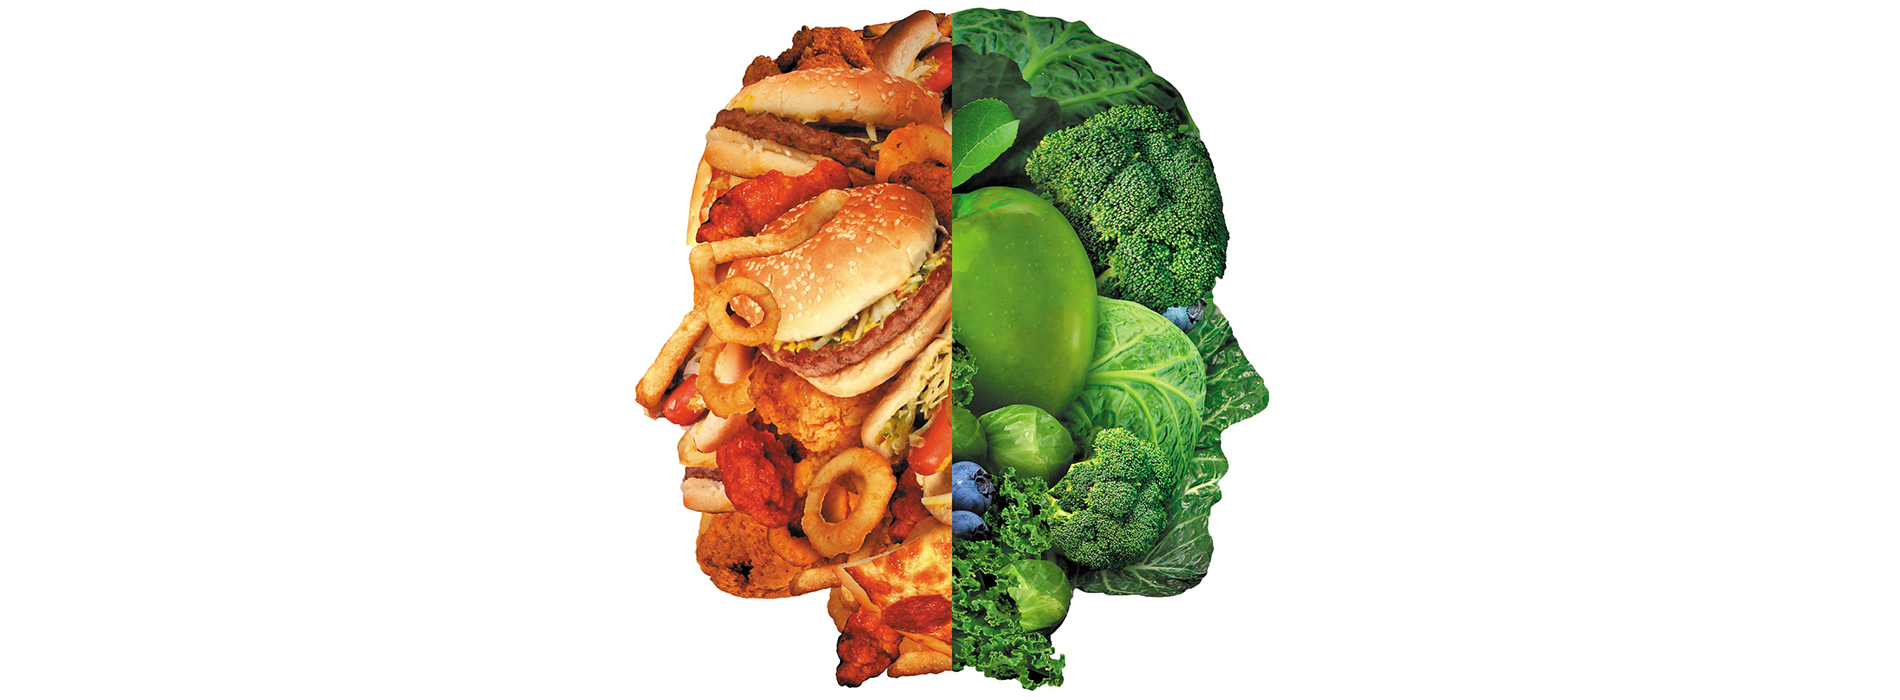 When we are young we tend to choose the first food that catches our eye. As we become more sensible, we think about the nutitional value of the food and the consequences of making the wrong decision.